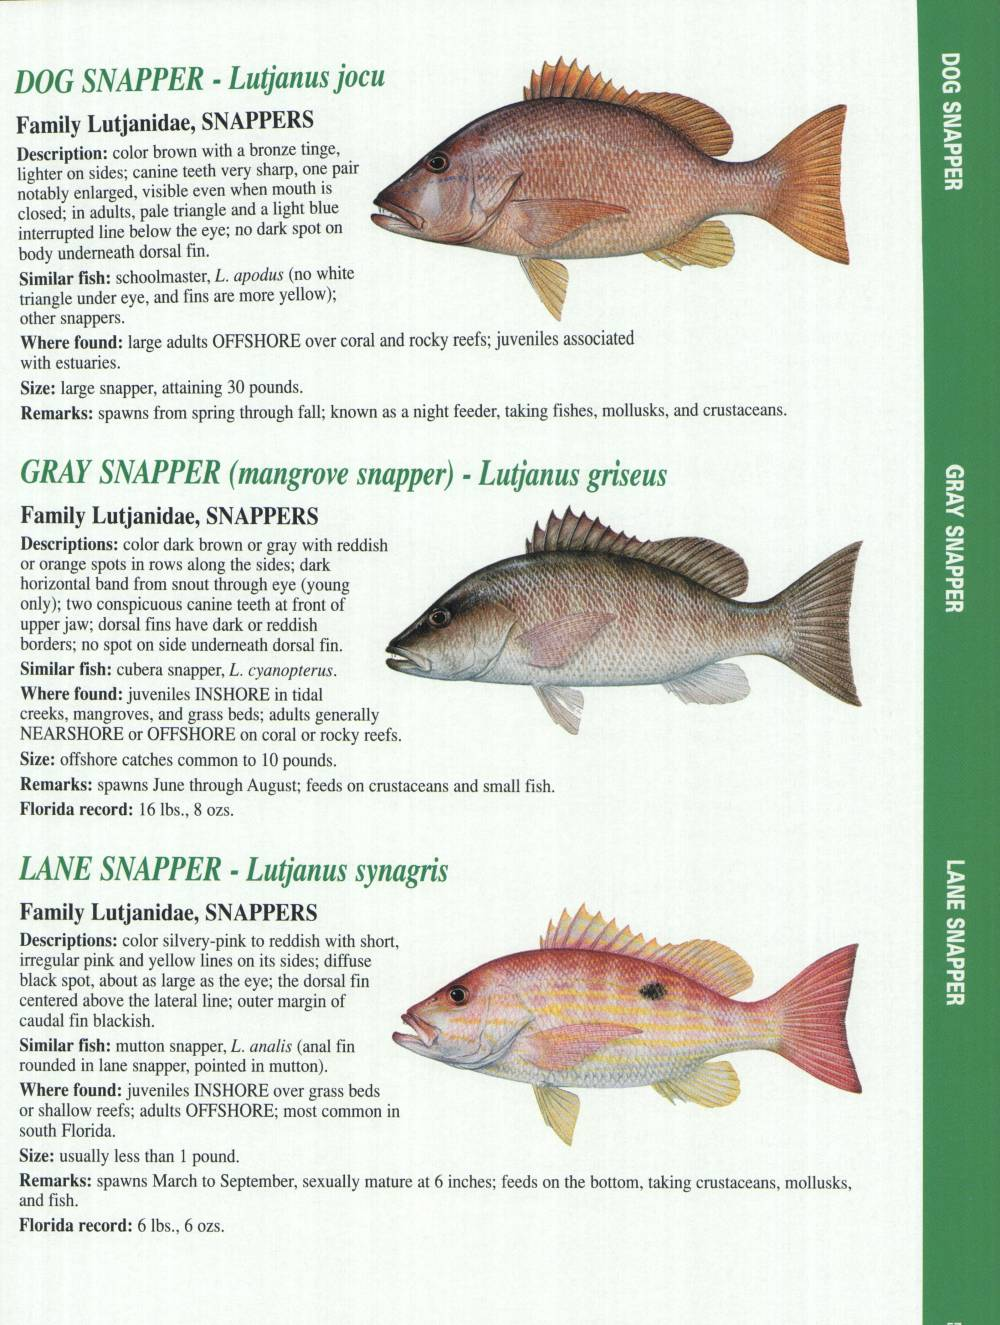 Crystal river fishing report florida gulf fish for Types of fish in the gulf of mexico